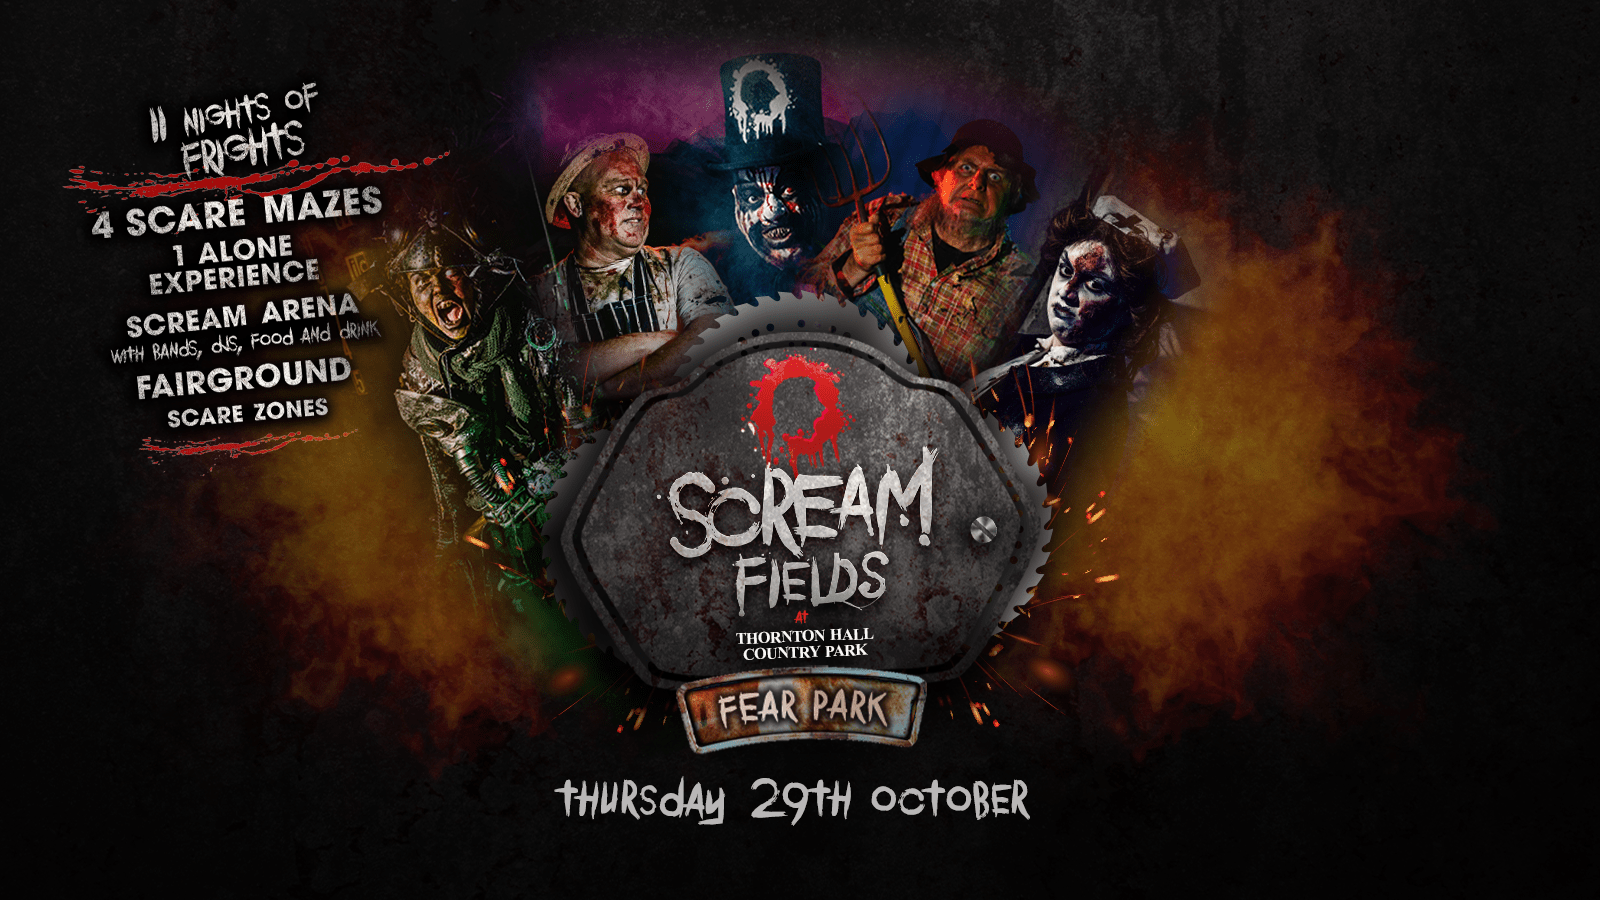 7.30PM – Screamfields: Thursday 29th October 2020